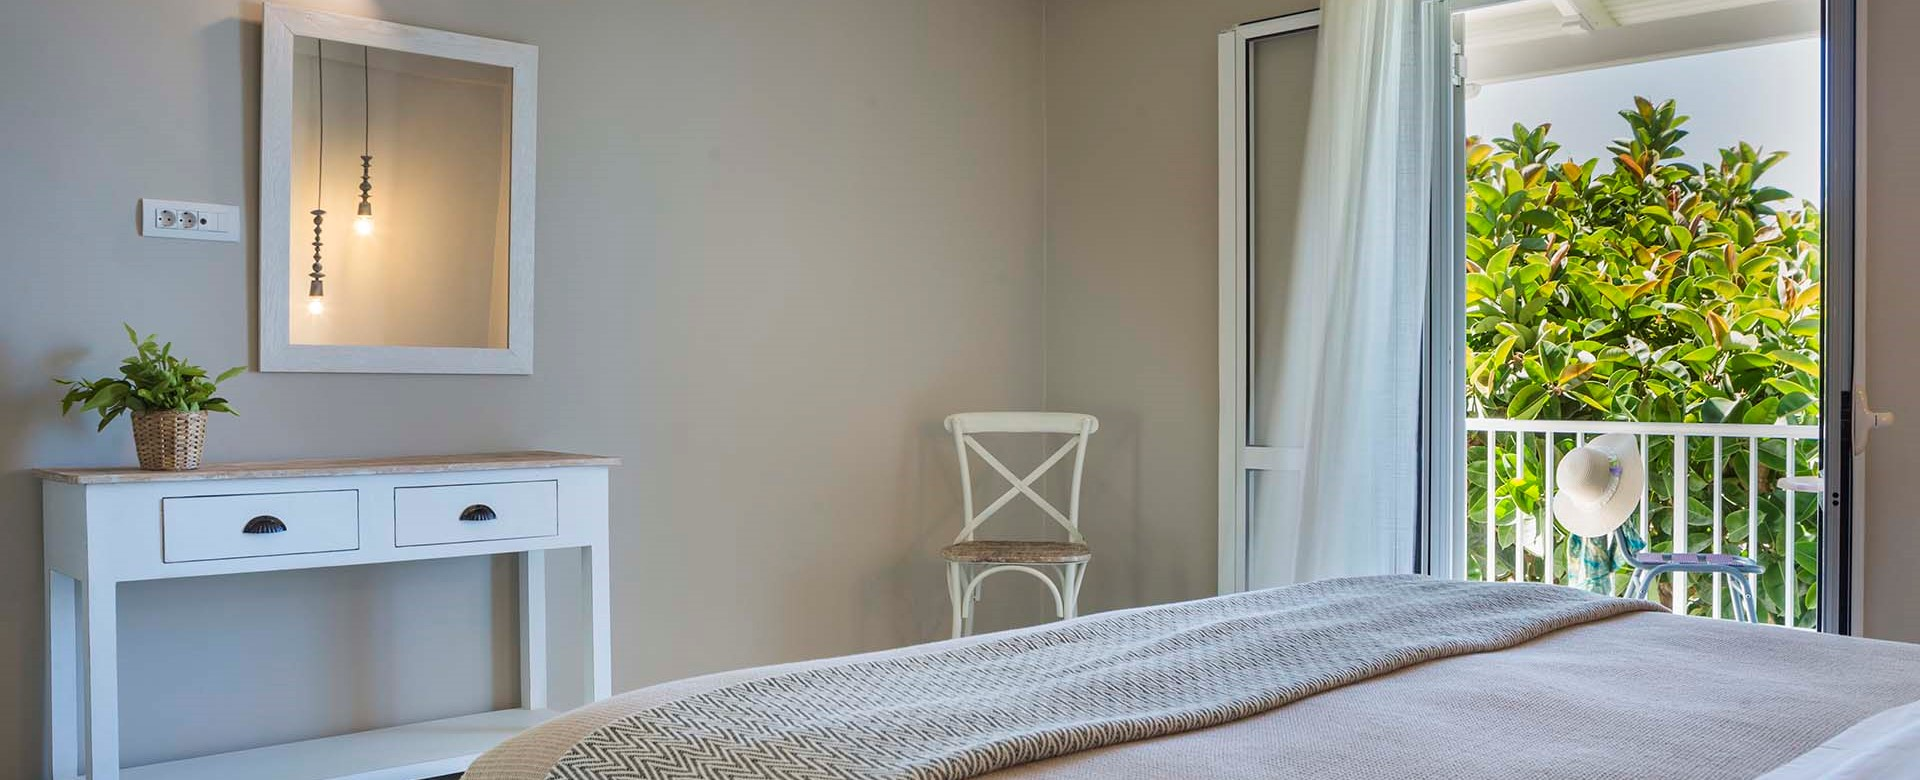 Double bed and French doors onto the balcony with views of the sea at Beachfront Suite No4, Lourdata, Kefalonia